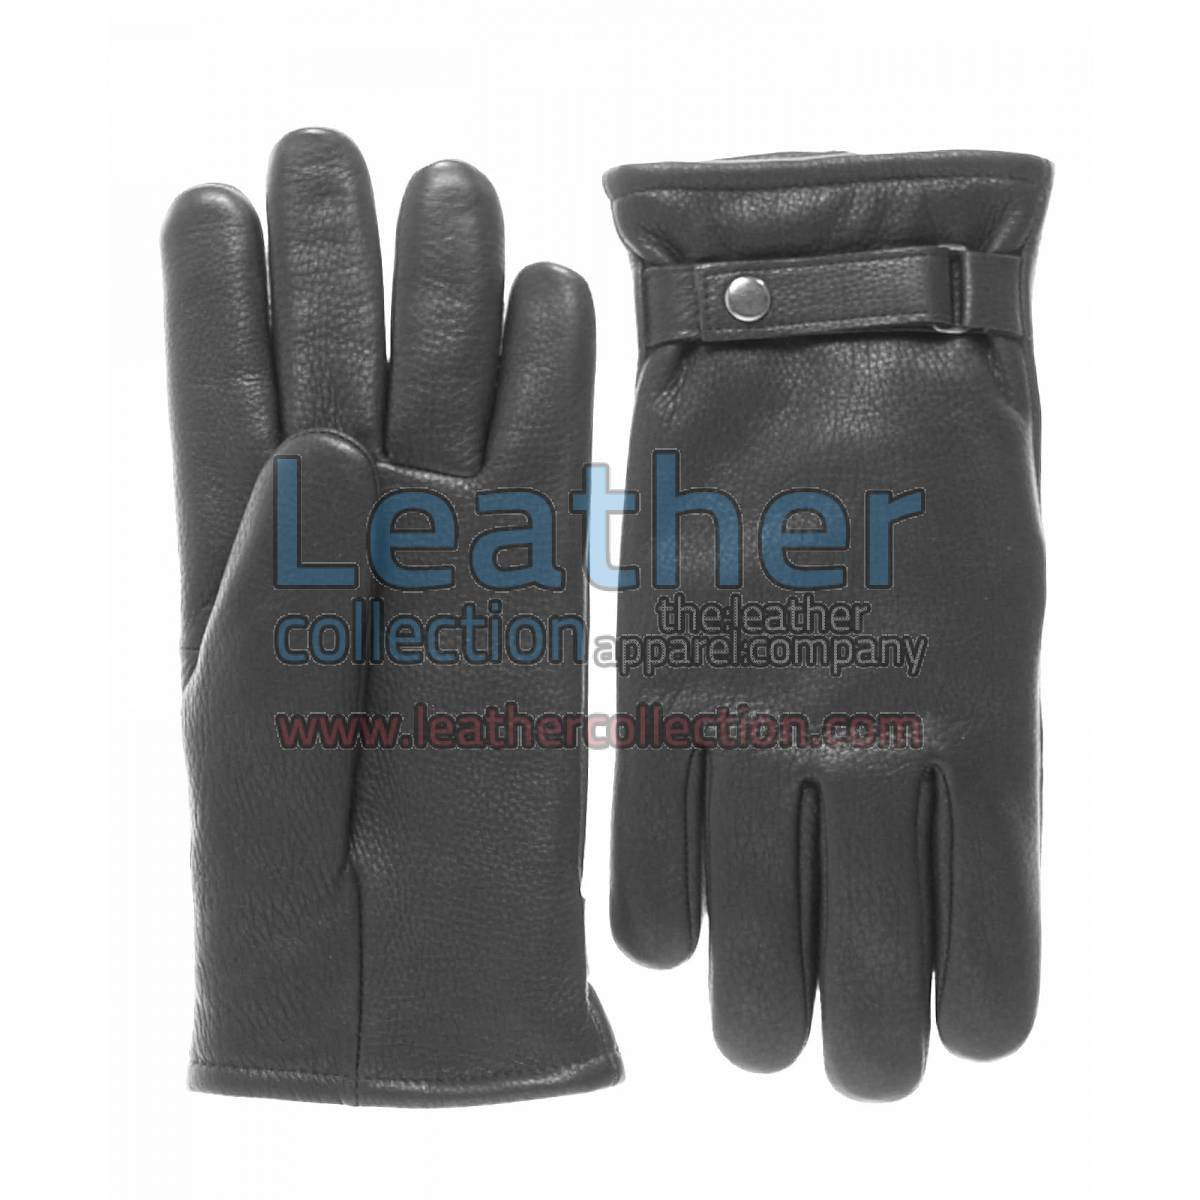 Tough Leather Gloves Black With Thinsulate Lining